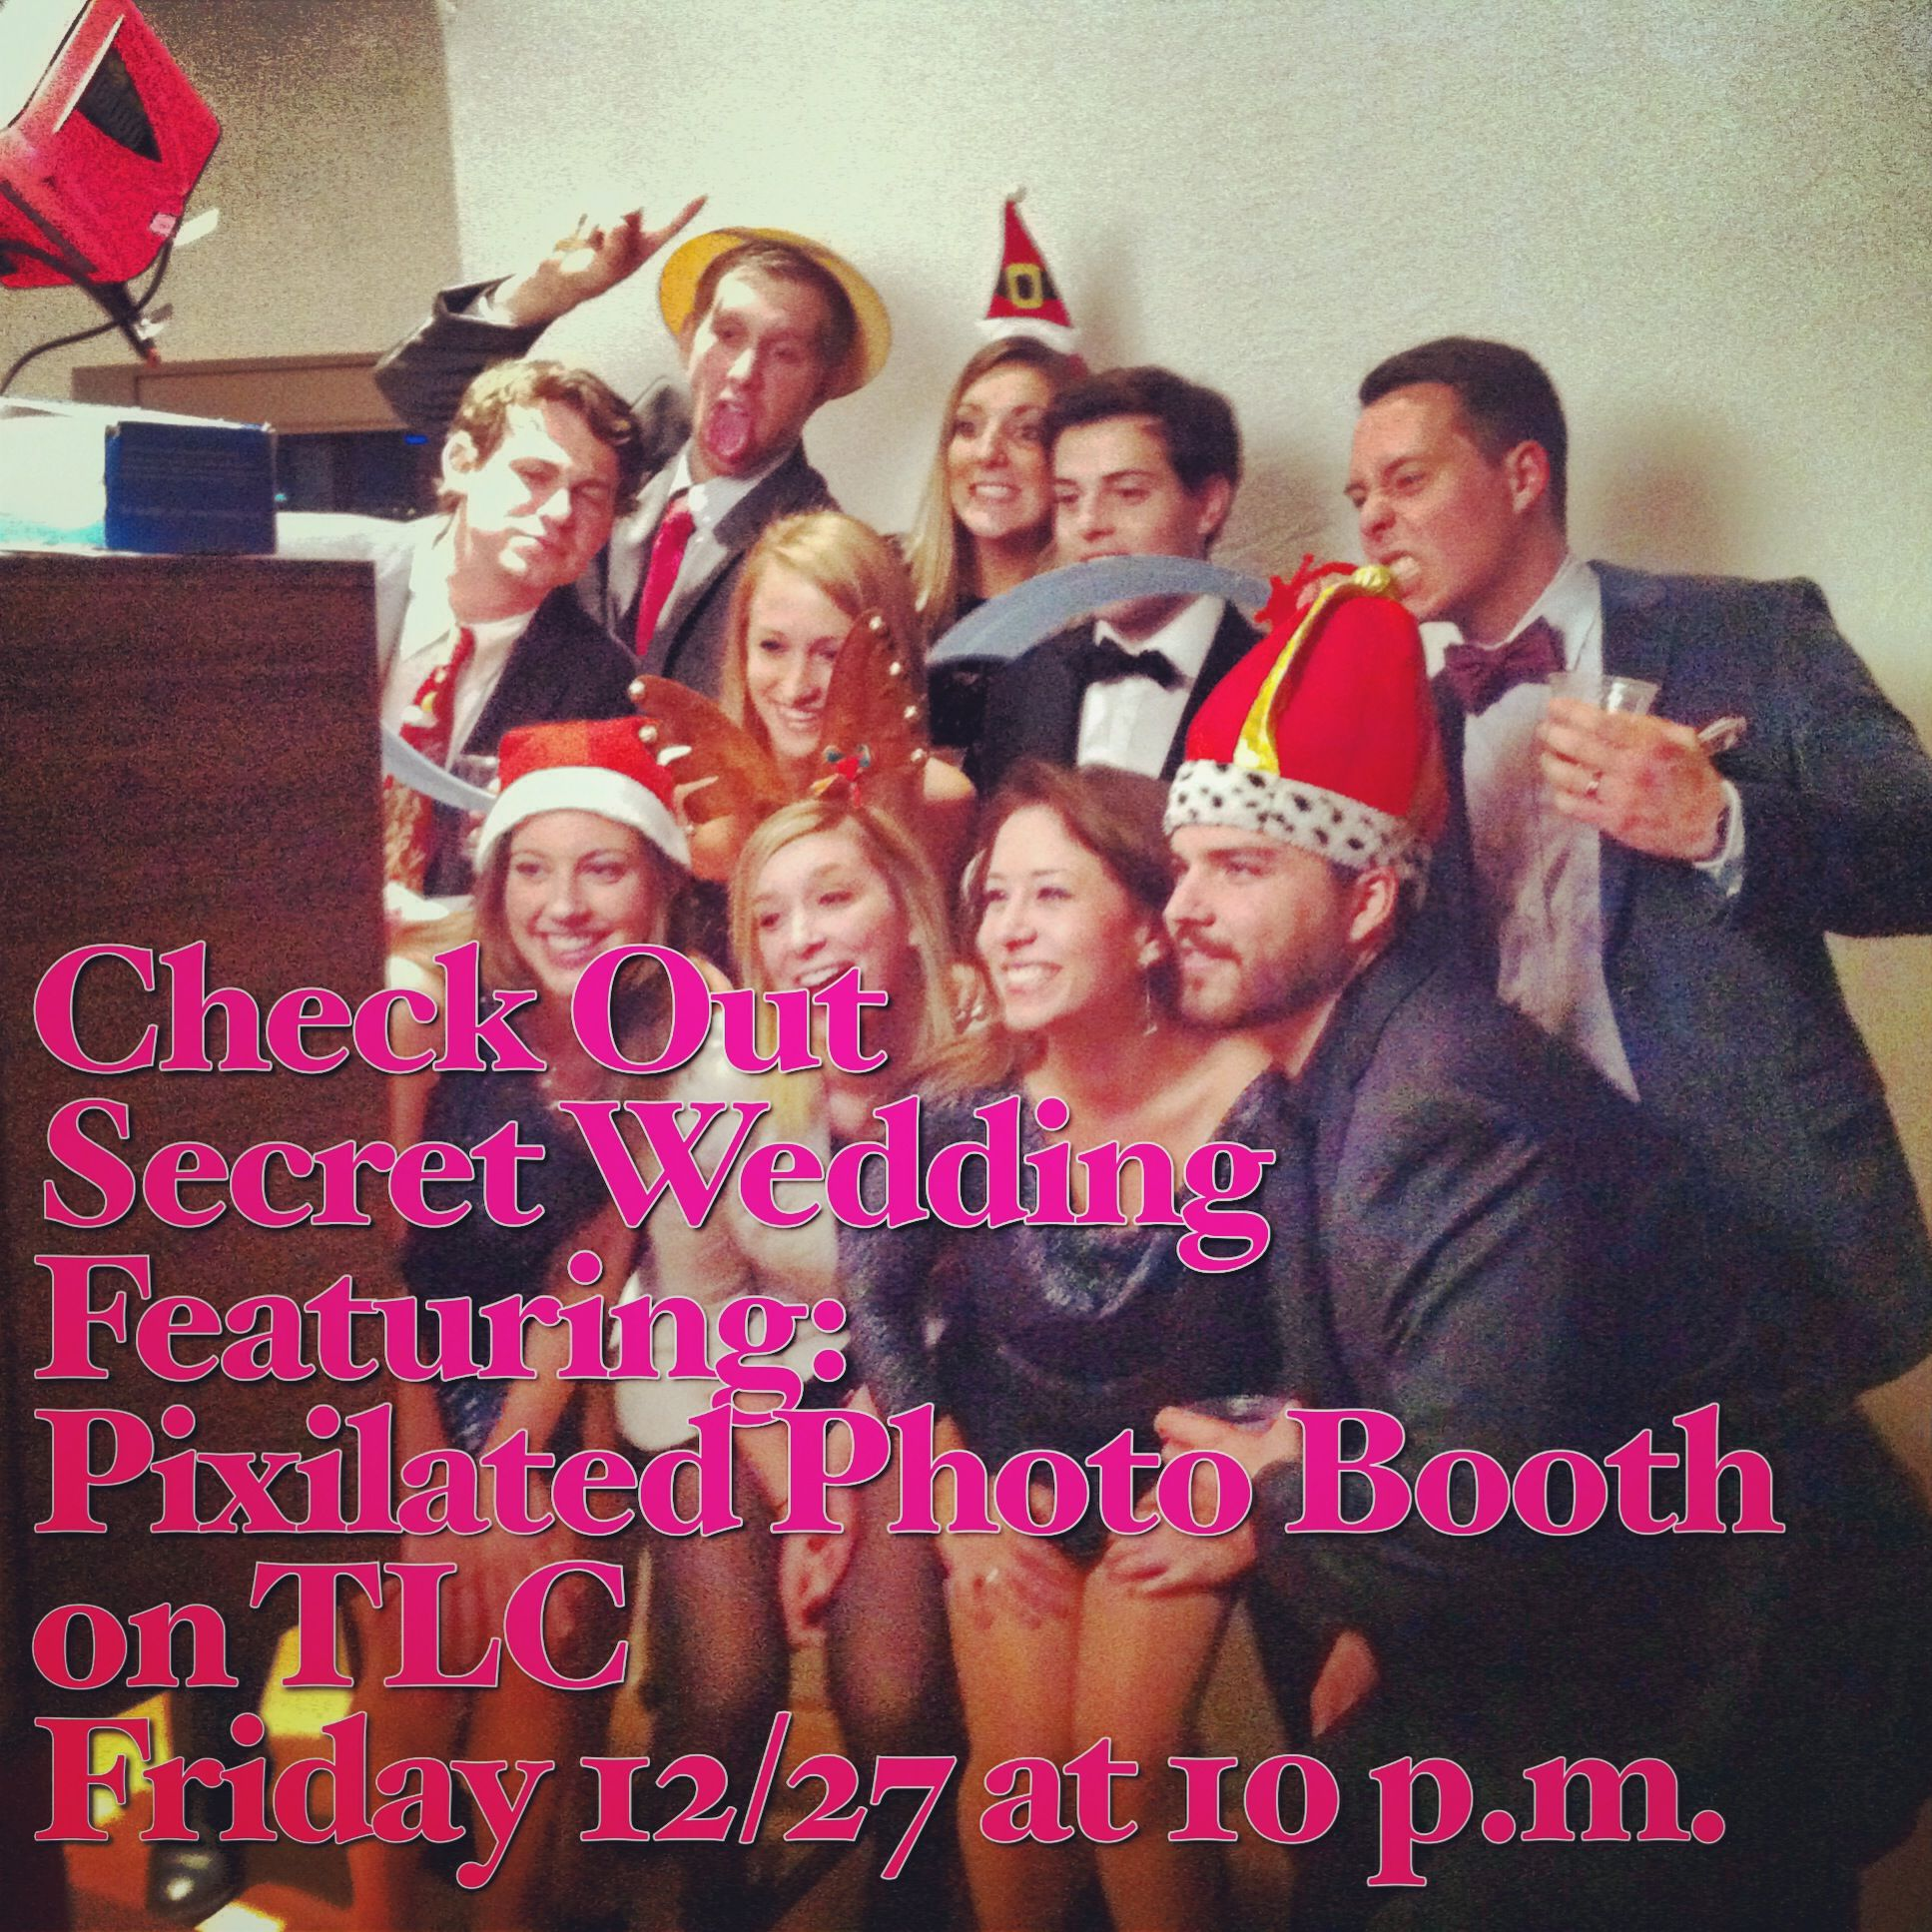 """Pin Me! Check out Pixilated Photo Booth on the Hit New TLC Wedding Show """"Secret Wedding"""" airing this Friday 12/27 at 10pm est. www.PixilatedPhotoBooth.com #tlc #wedding #photobooth #getpixilated #webringfun #secretwedding"""